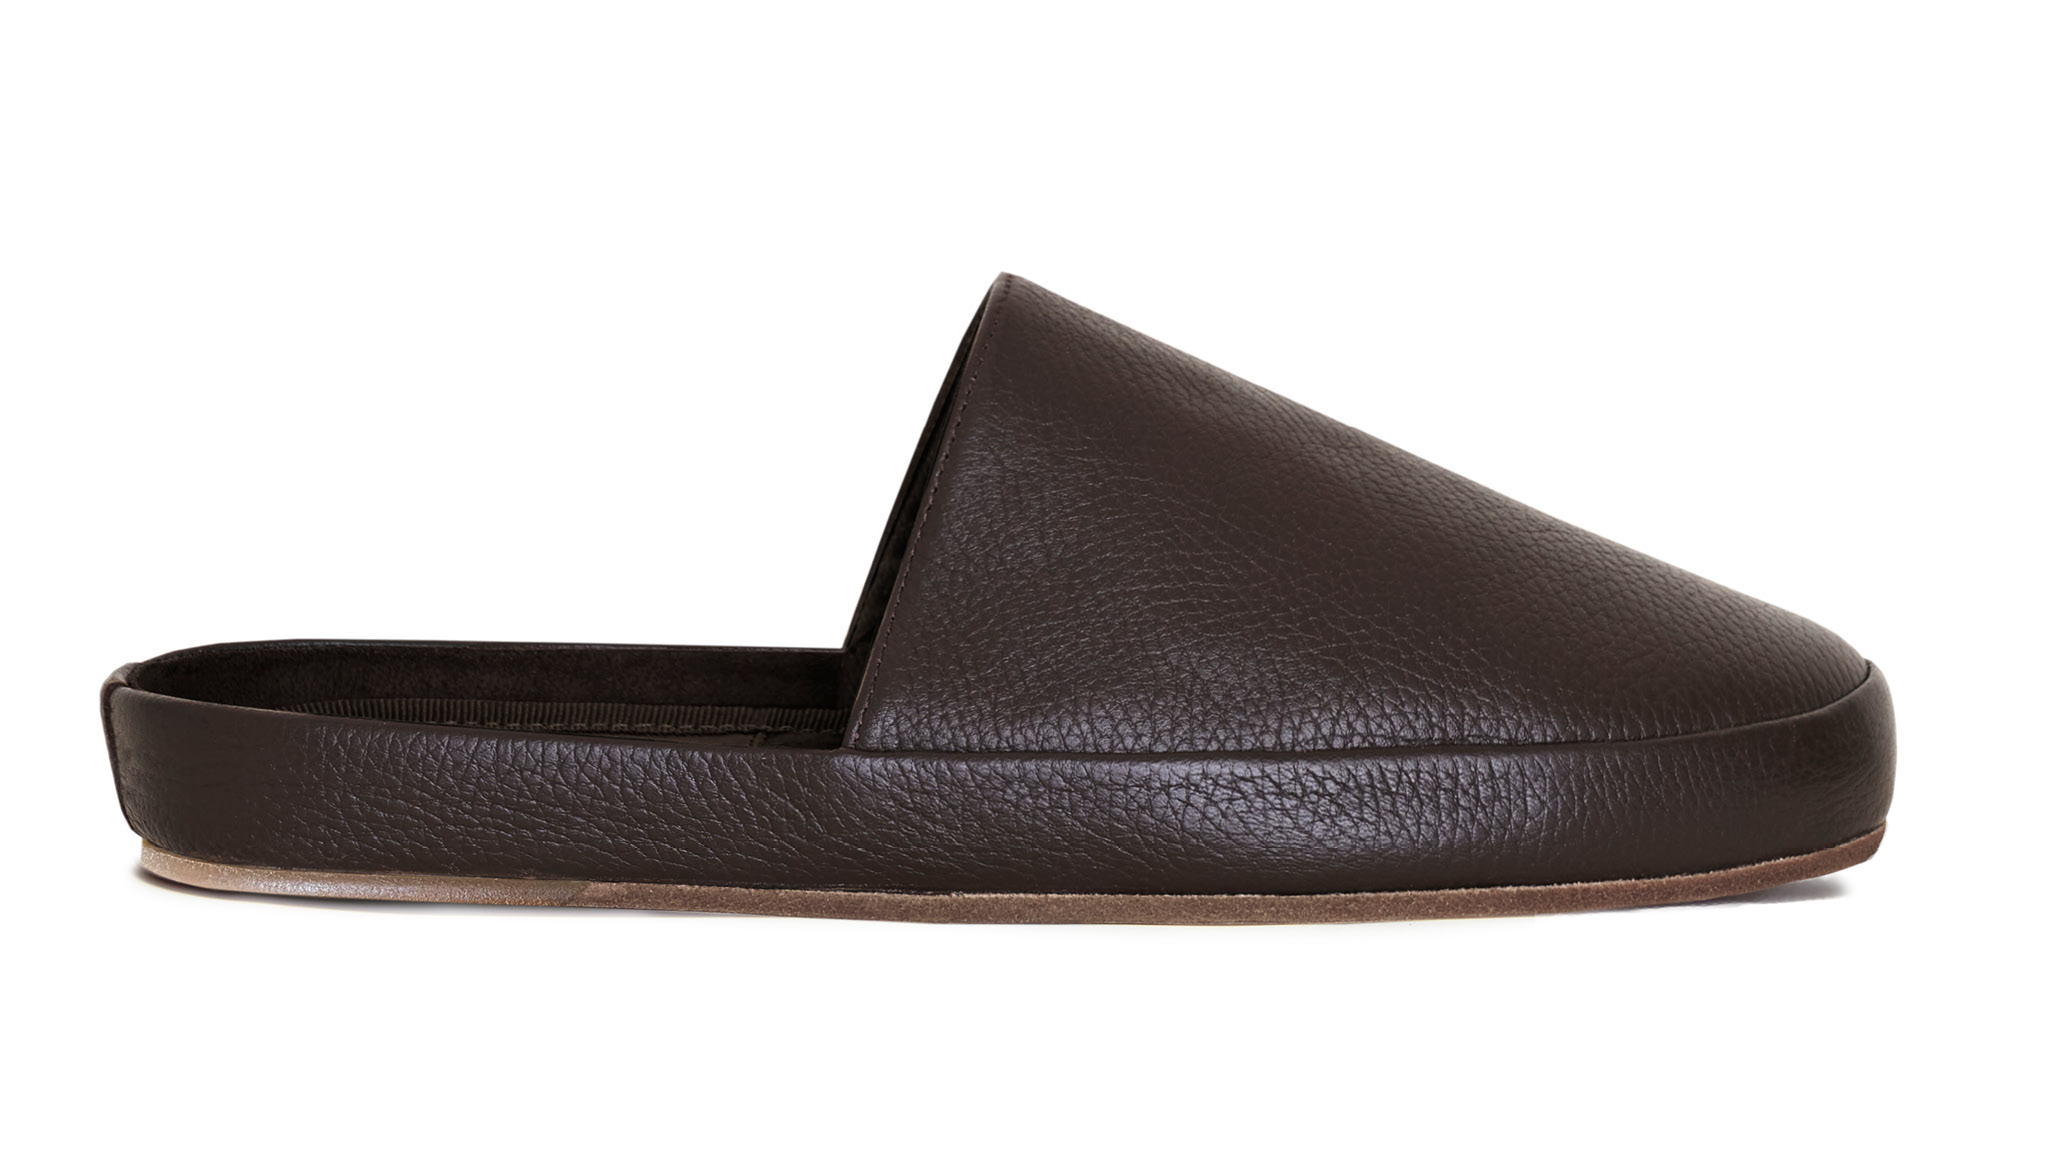 Brown Leather Mens Slippers | MULO shoes | Premium Italian Leather